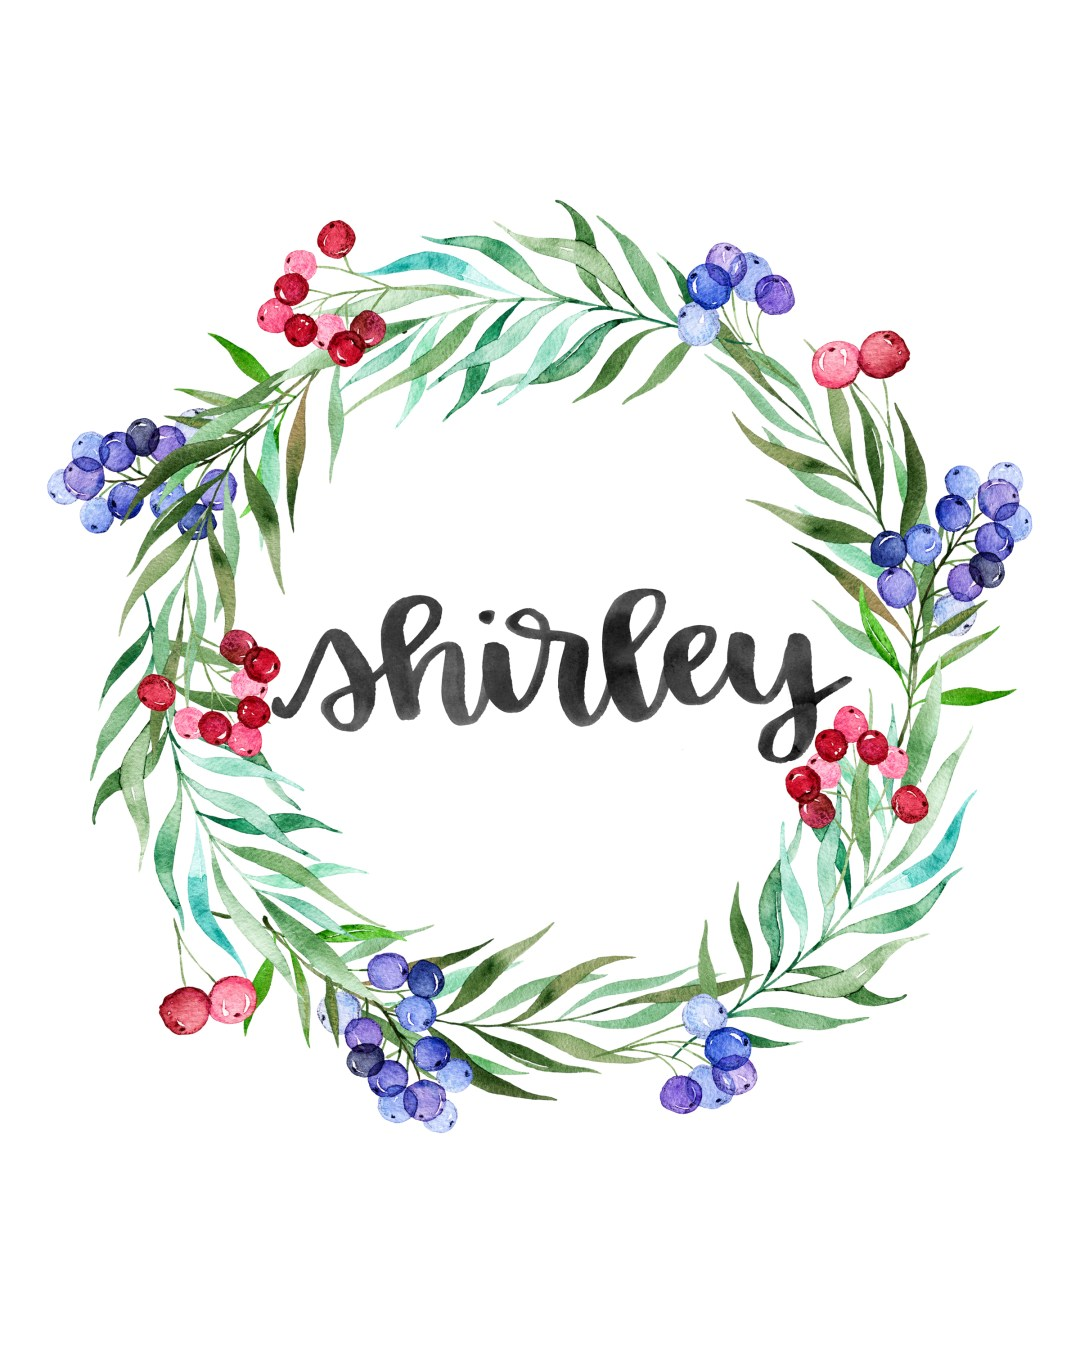 Personalized Wreath Prints - bit.ly/olivewreaths